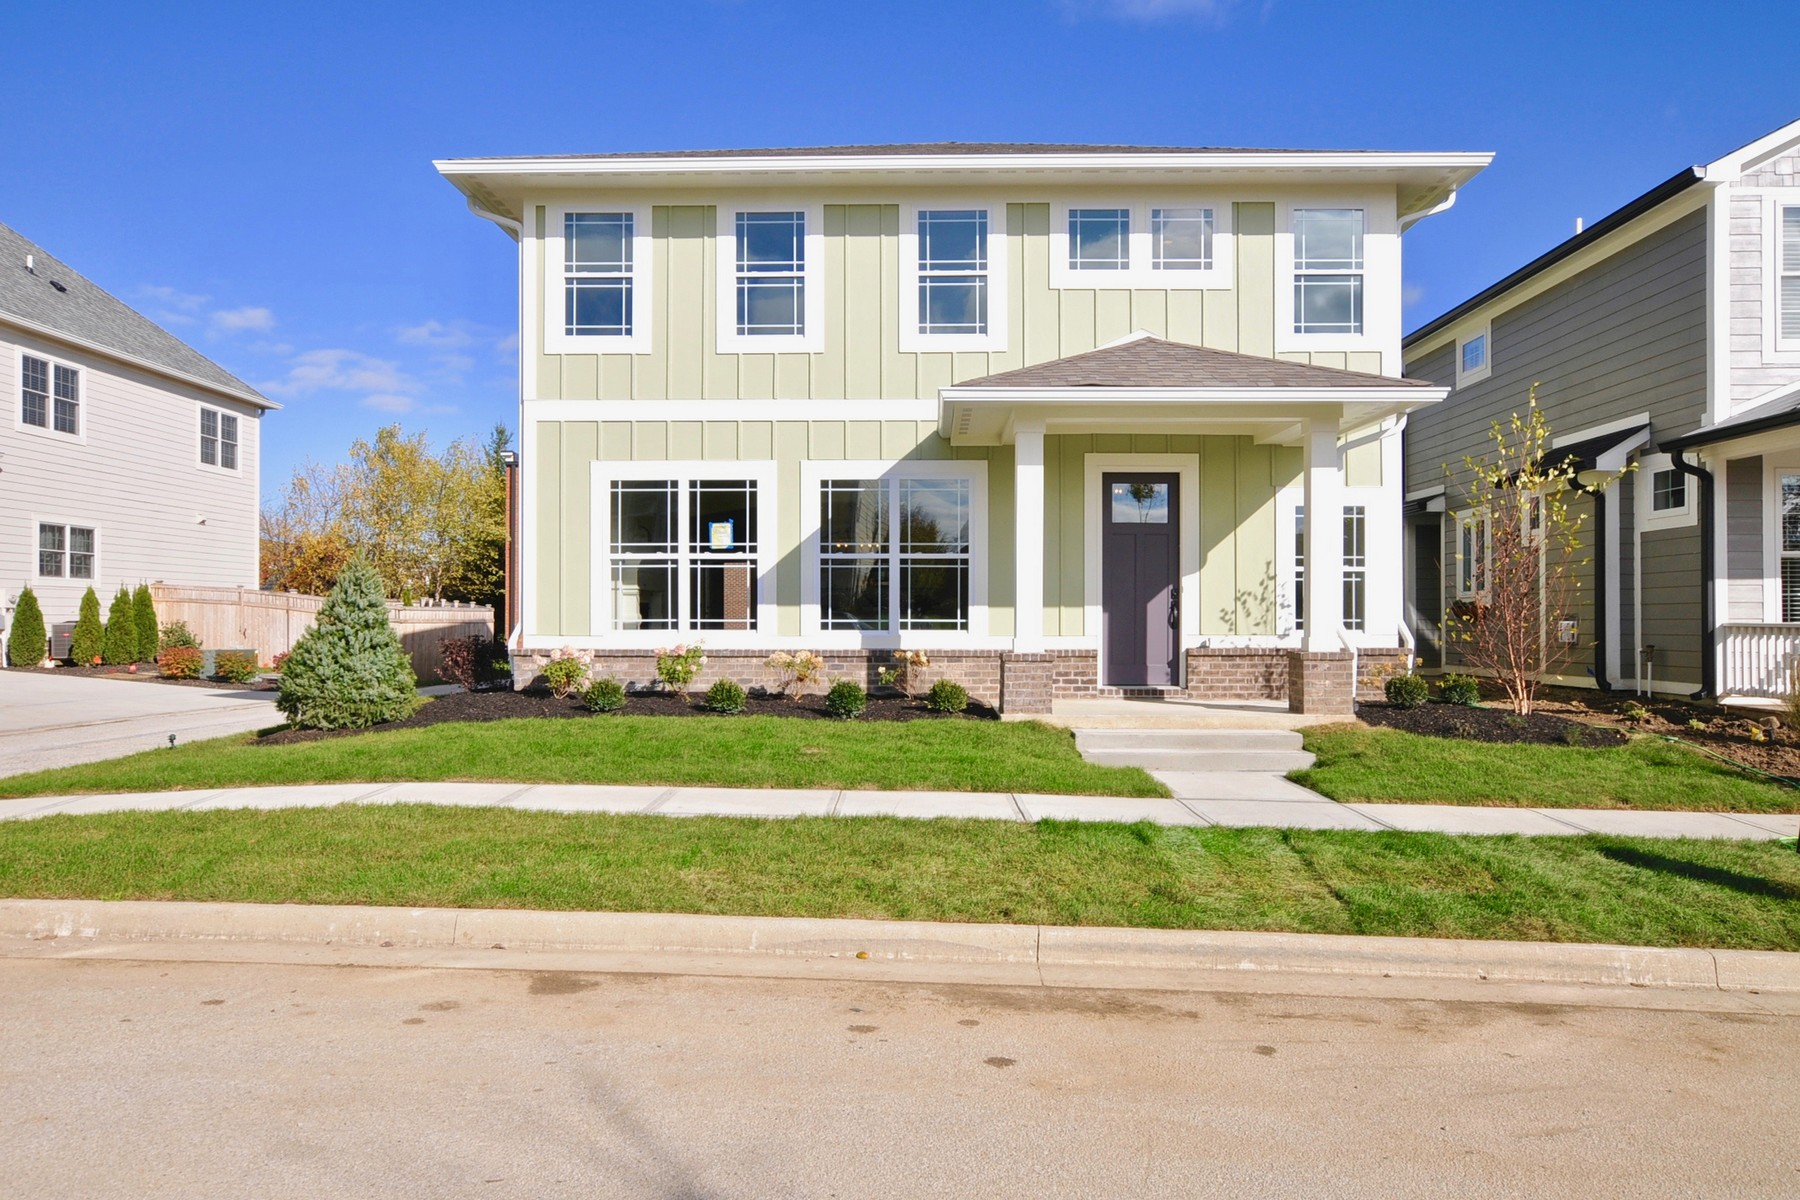 Single Family Home for Rent at Brand New 3 Bedroom Home in Stonegate 7636 Beekman Terrace Zionsville, Indiana 46077 United States